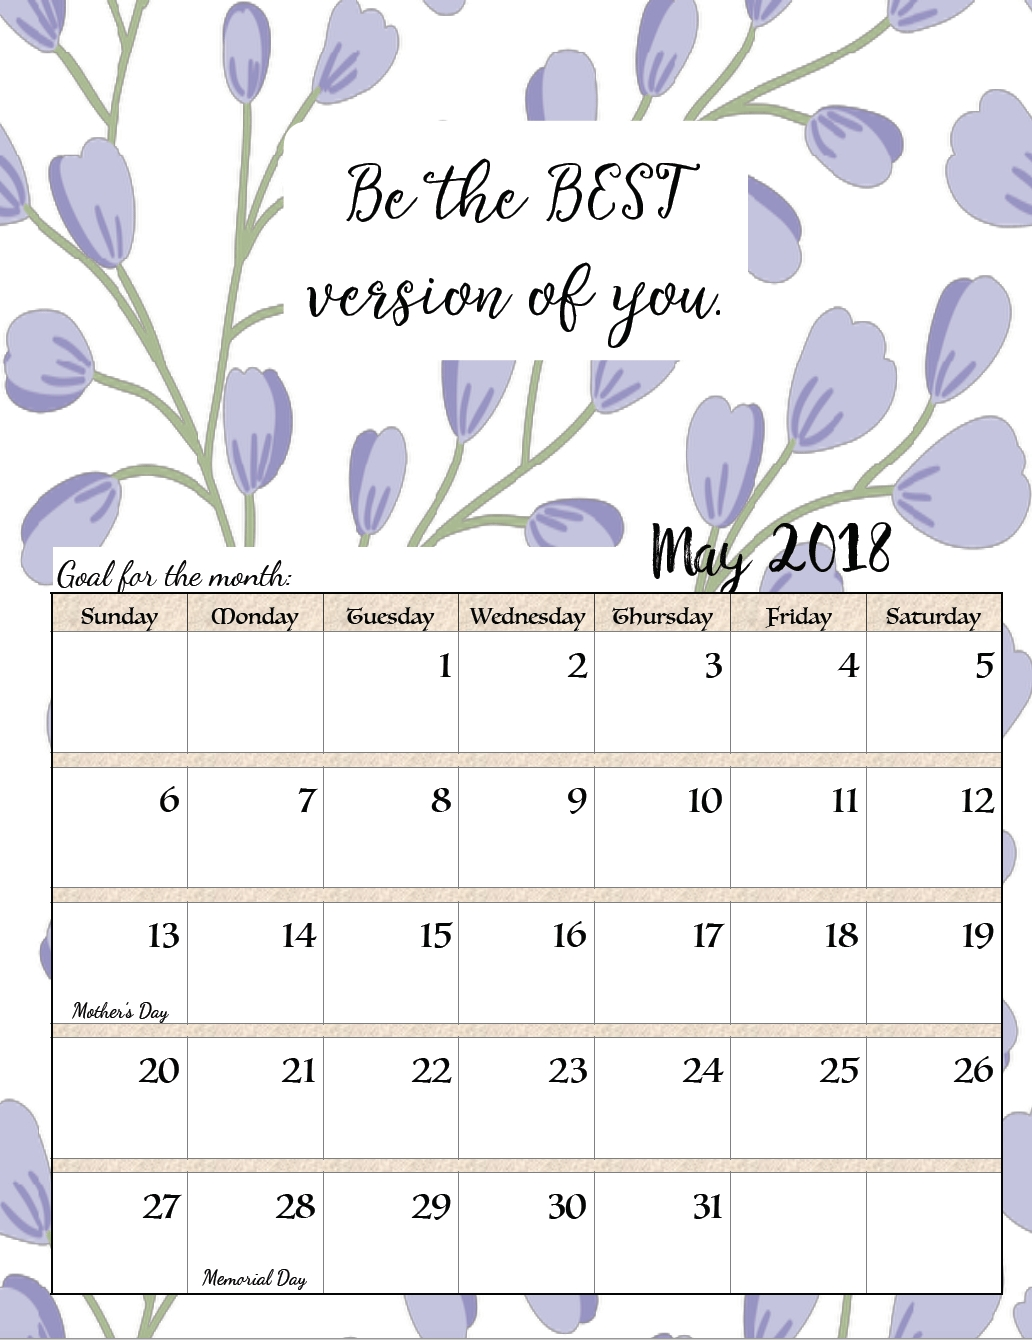 Free Printable 2018 Monthly Motivational Calendars | عععع | May 2018 Monthly Calendar Inspirational Quotes